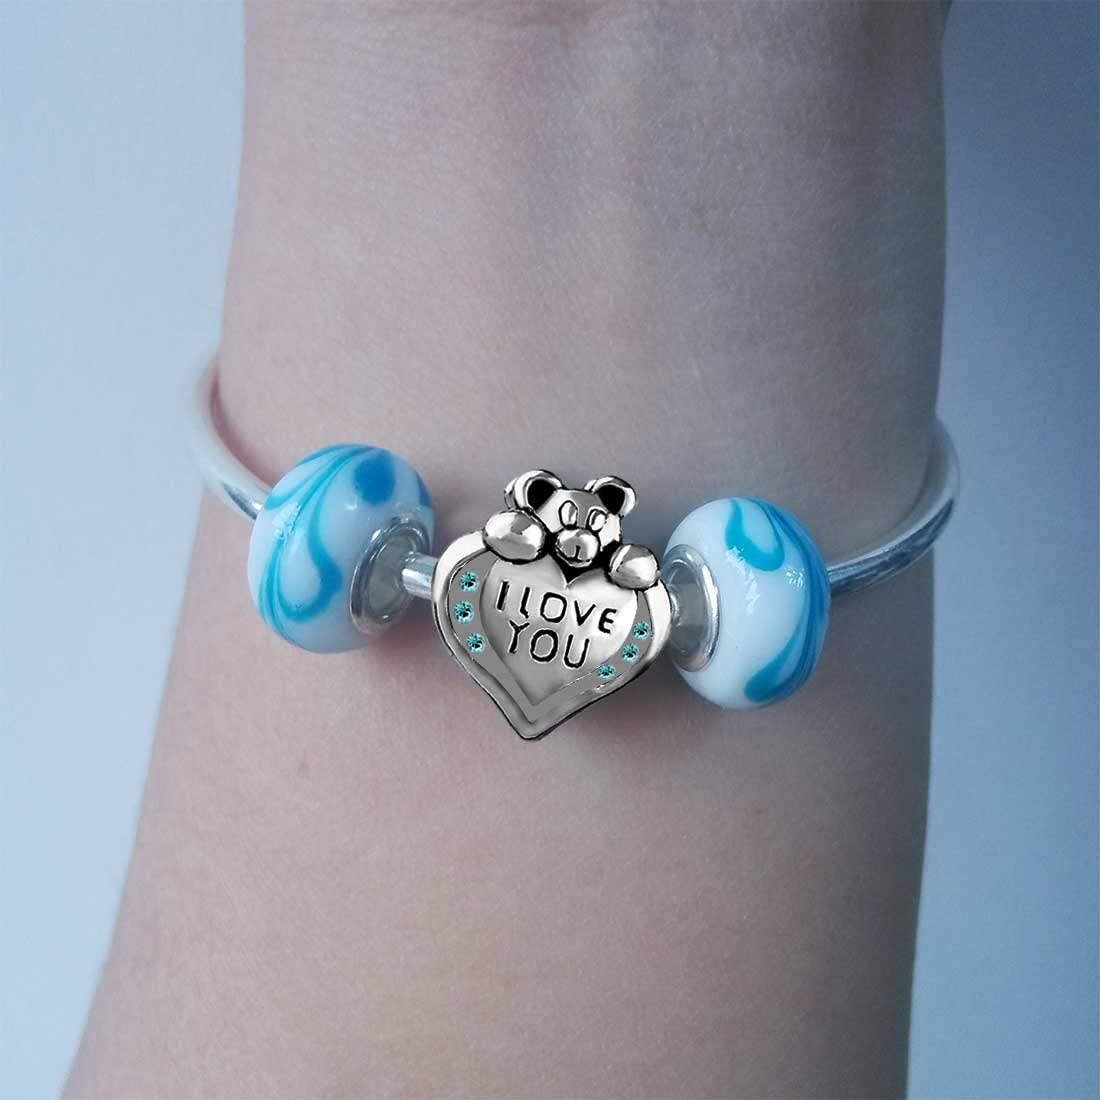 GiftJewelryShop Olympics Boxing Gloves Blue Aquamarine Crystal March Birthstone I Love You Heart Care Bear Charm Bracelets